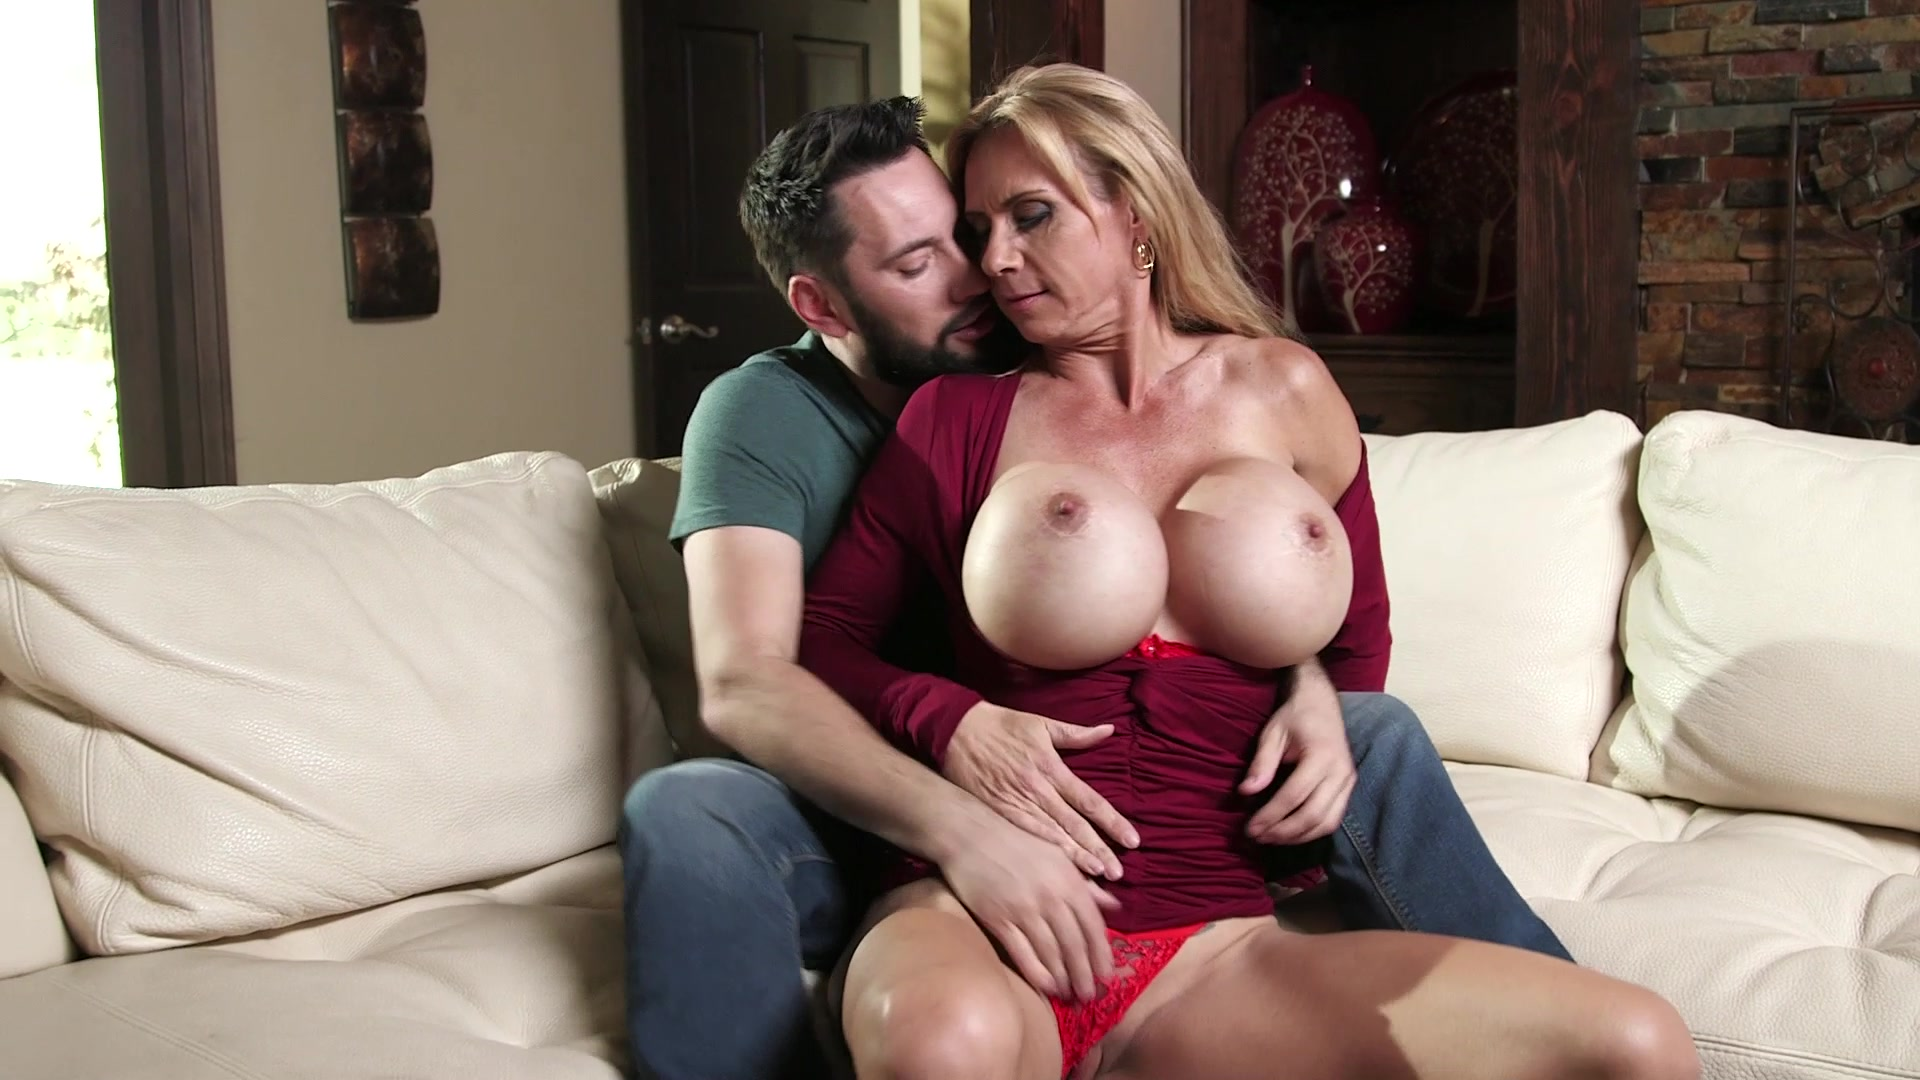 richards-nude-bumped-into-denise-she-had-nice-tits-and-blwojob-porn